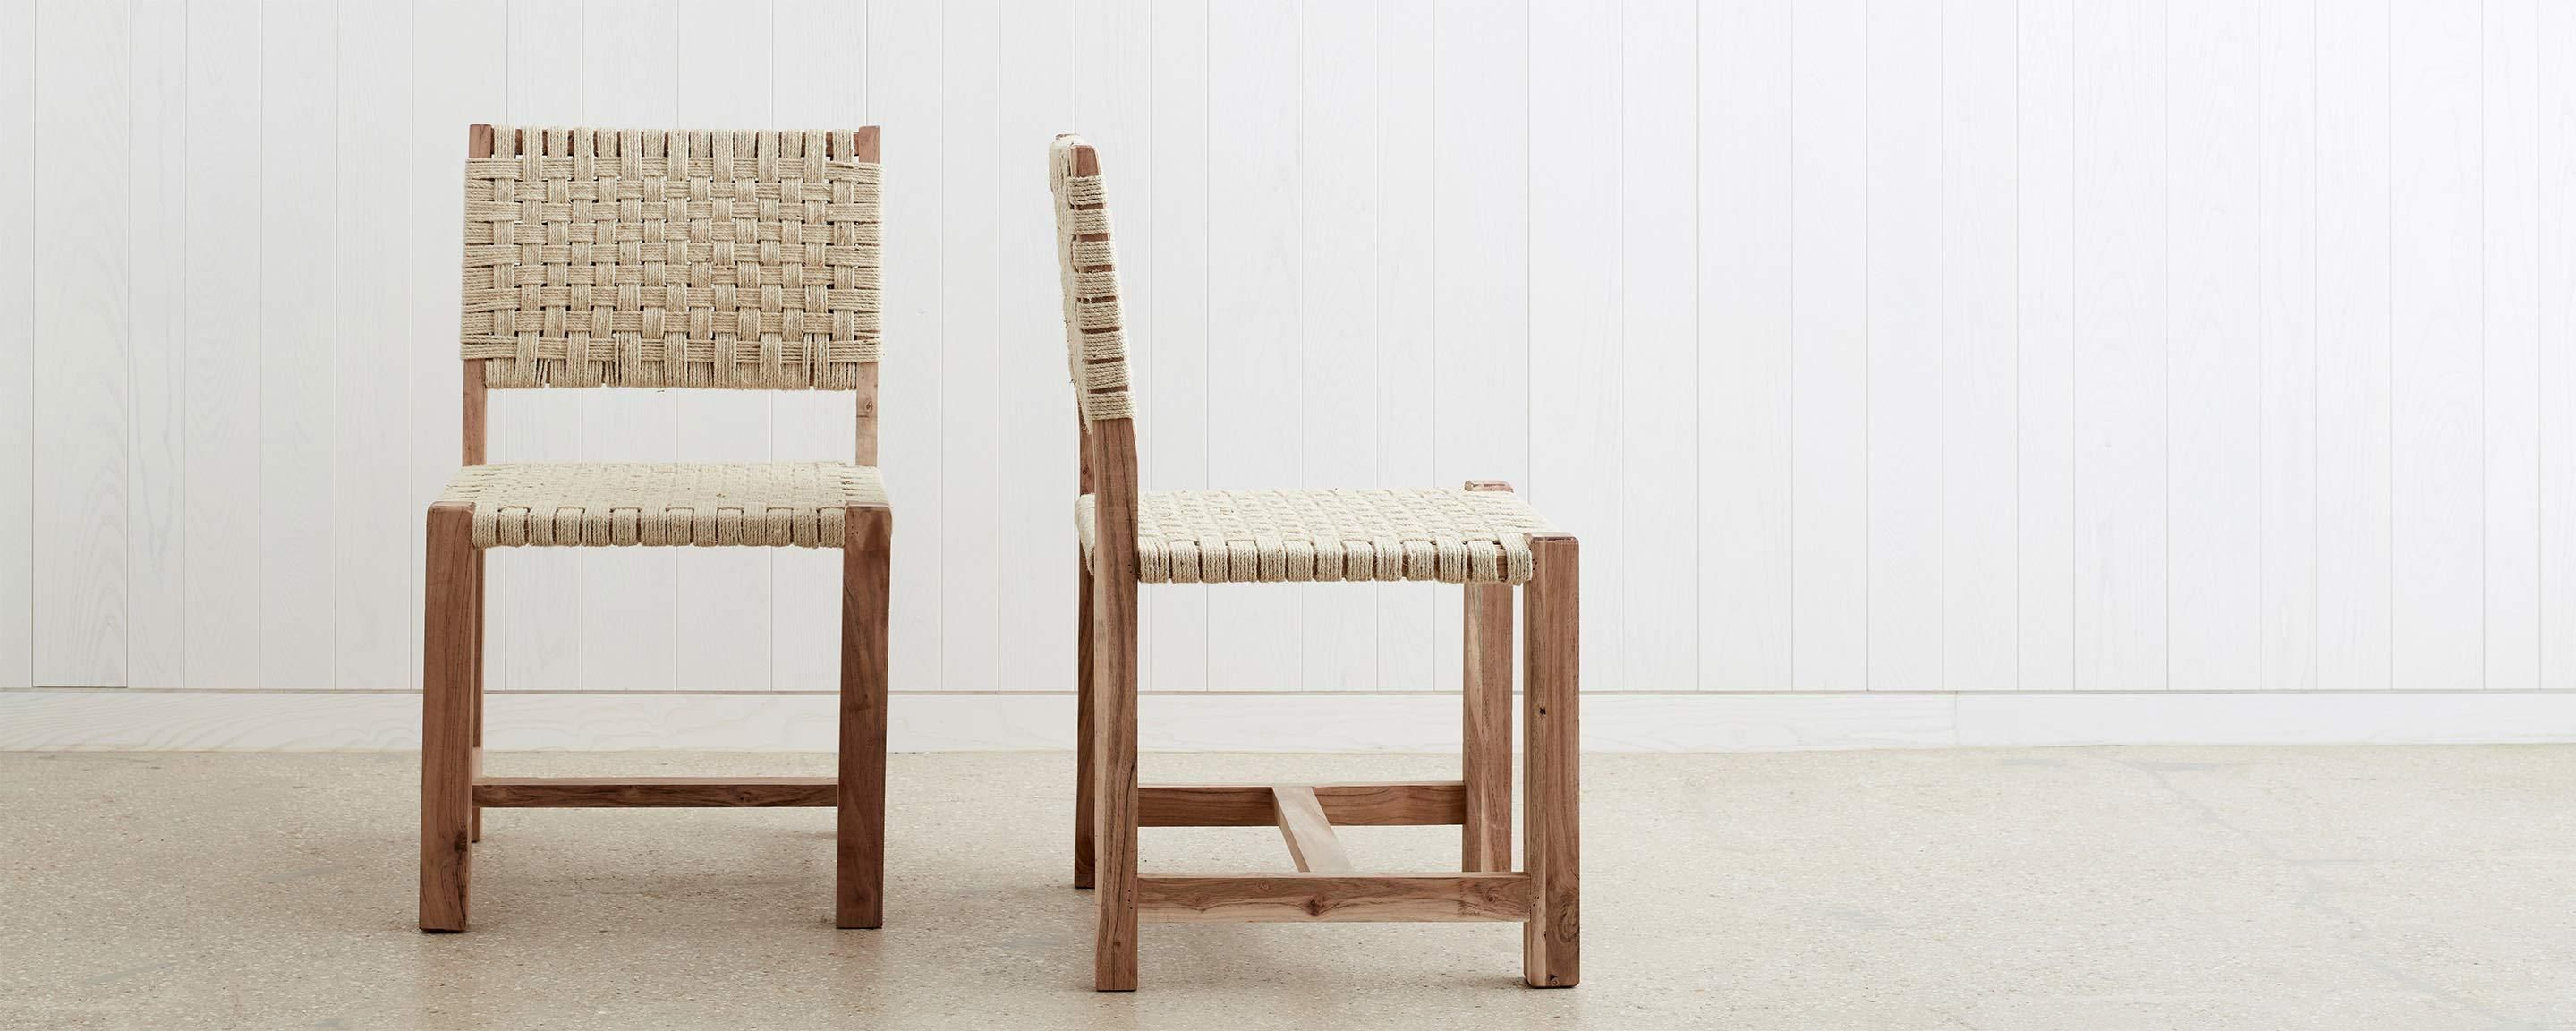 The Woven Jute Dining Chair Target Lounge Chairs Dining Room